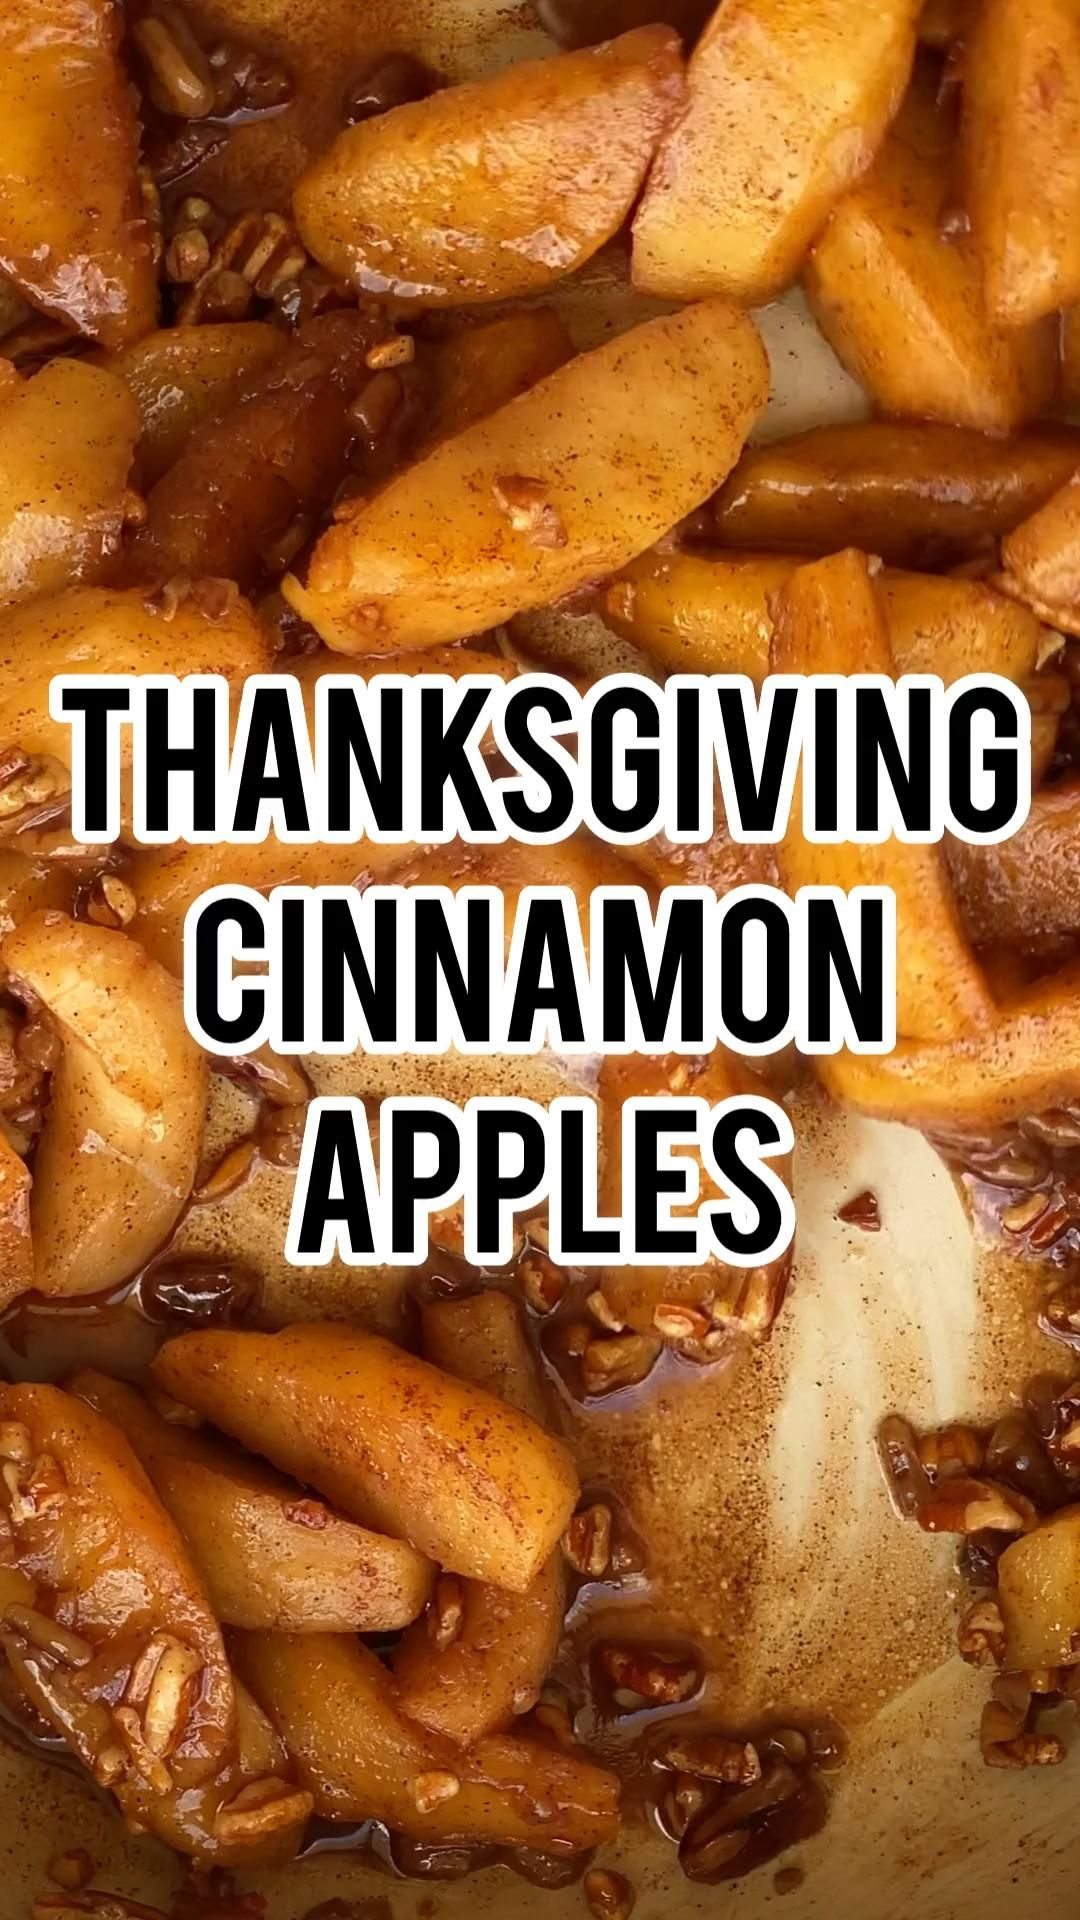 Thanksgiving Cinnamon Apples (SIDE DISH) -   25 thanksgiving recipes side dishes videos ideas